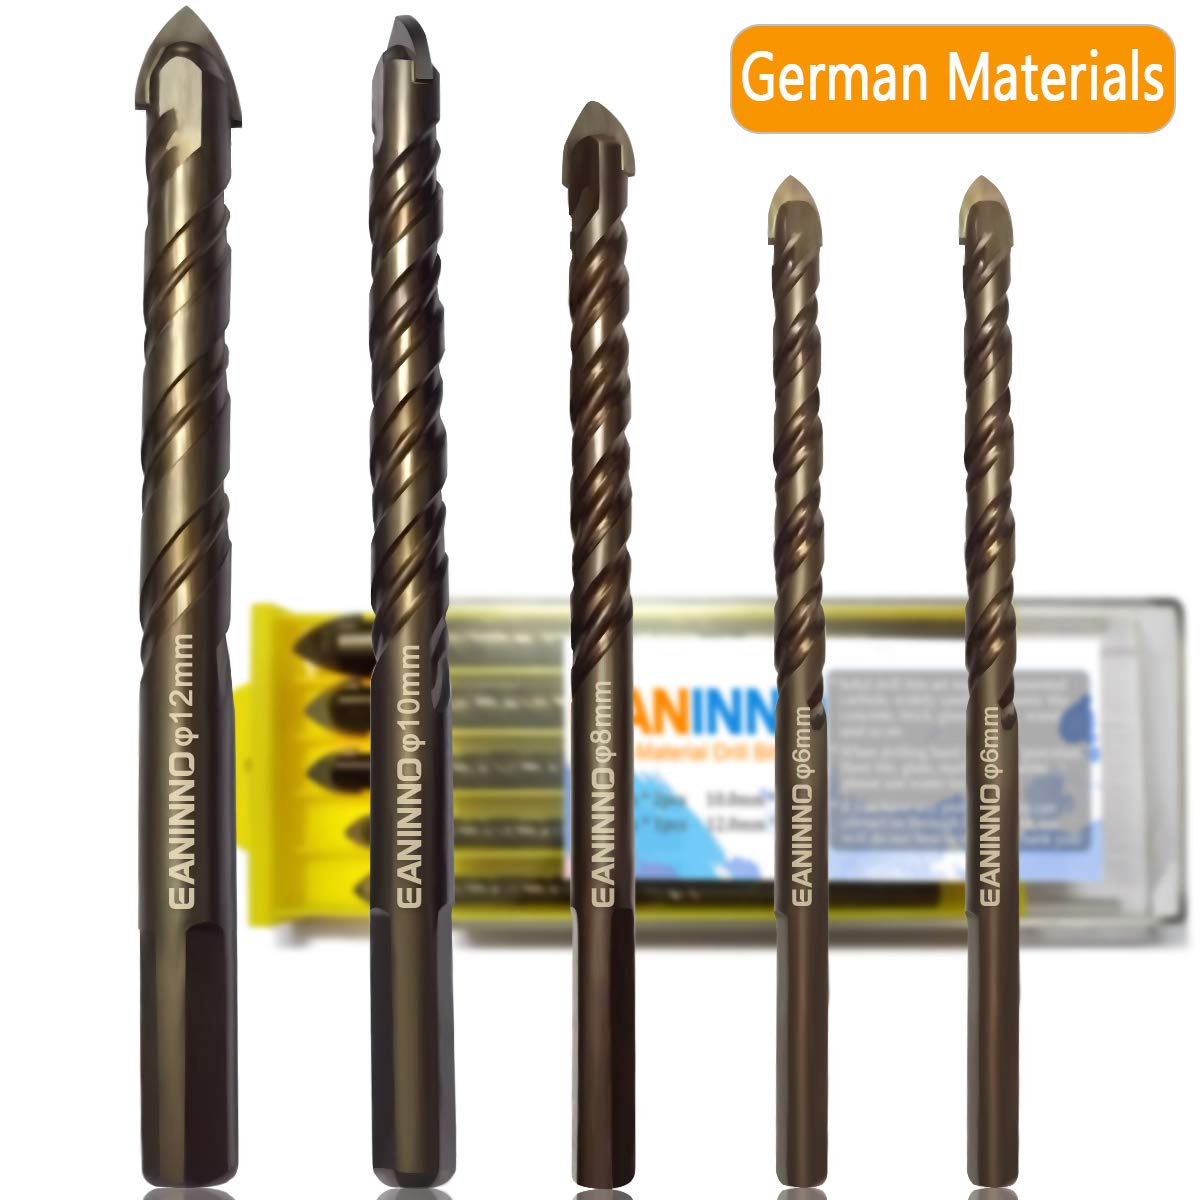 5 Piece Concrete Drill Bit Set, German Cemented Carbide Masonry Drill Bits for Concrete/Ceramic Tile/Brick/Wall/Plastic/Wood/Glass, Twist Tip Bit Tool by Eaninno (6 6 8 10 12mm)